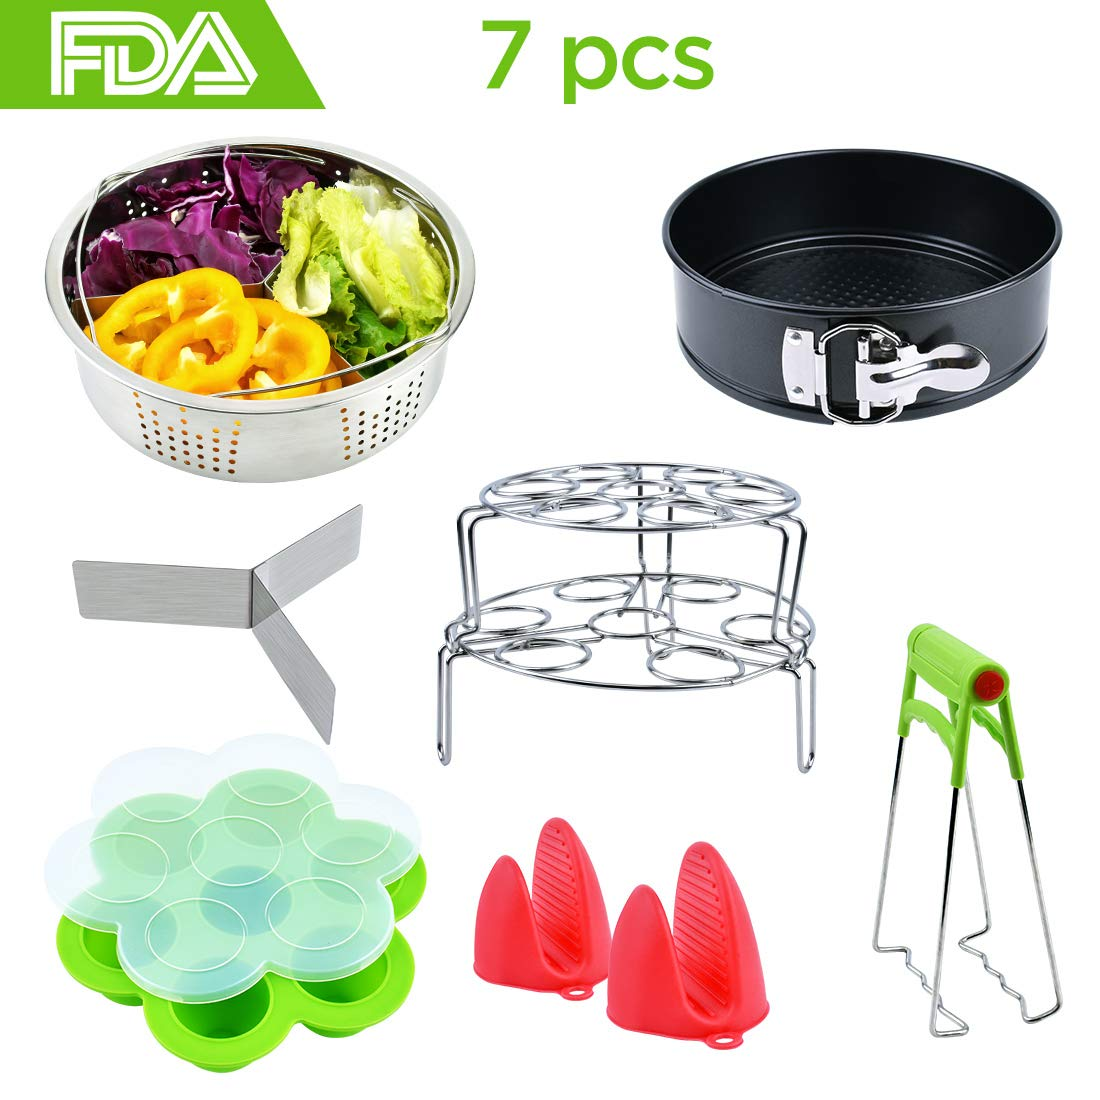 Pressure Cooker Accessories Kit: 7 Pieces - Compatible with 6,8 Qt Instant Pot - Springform Cake Pan/Steamer Basket Inserts/Egg Steamer Rack/Silicone Egg Bites Molds/Oven Mitts/Dish Clip Food Tongs